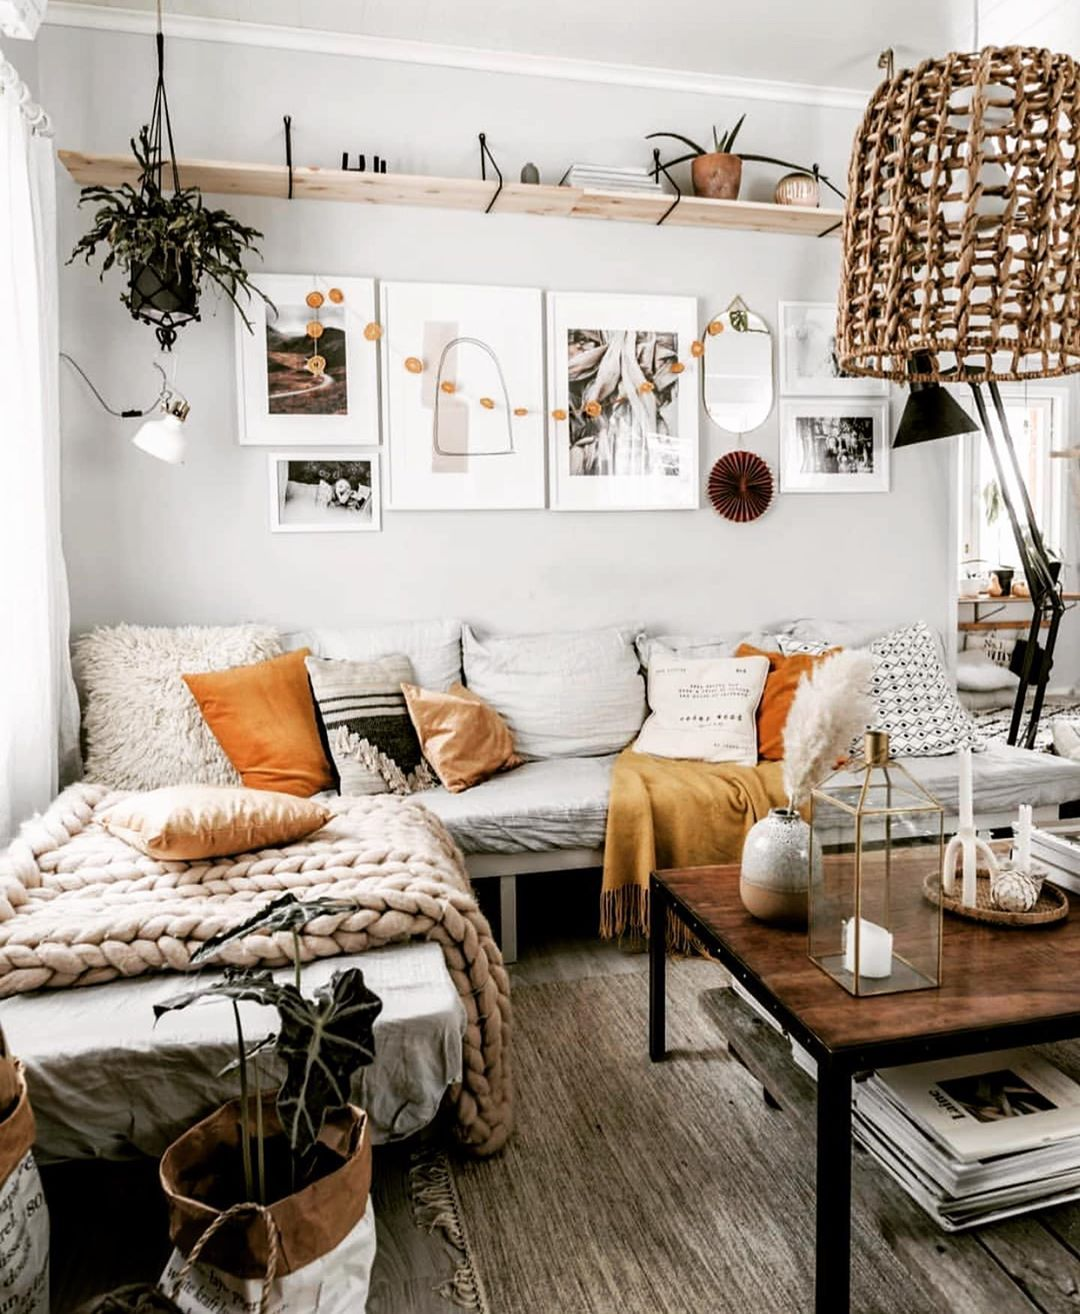 Hello there With warm colors and textures this cozy living corner by @home.by.pi...-#*  #bohemiandecor #bohodecor #bo… | Popular living room, Home, Cozy living  rooms